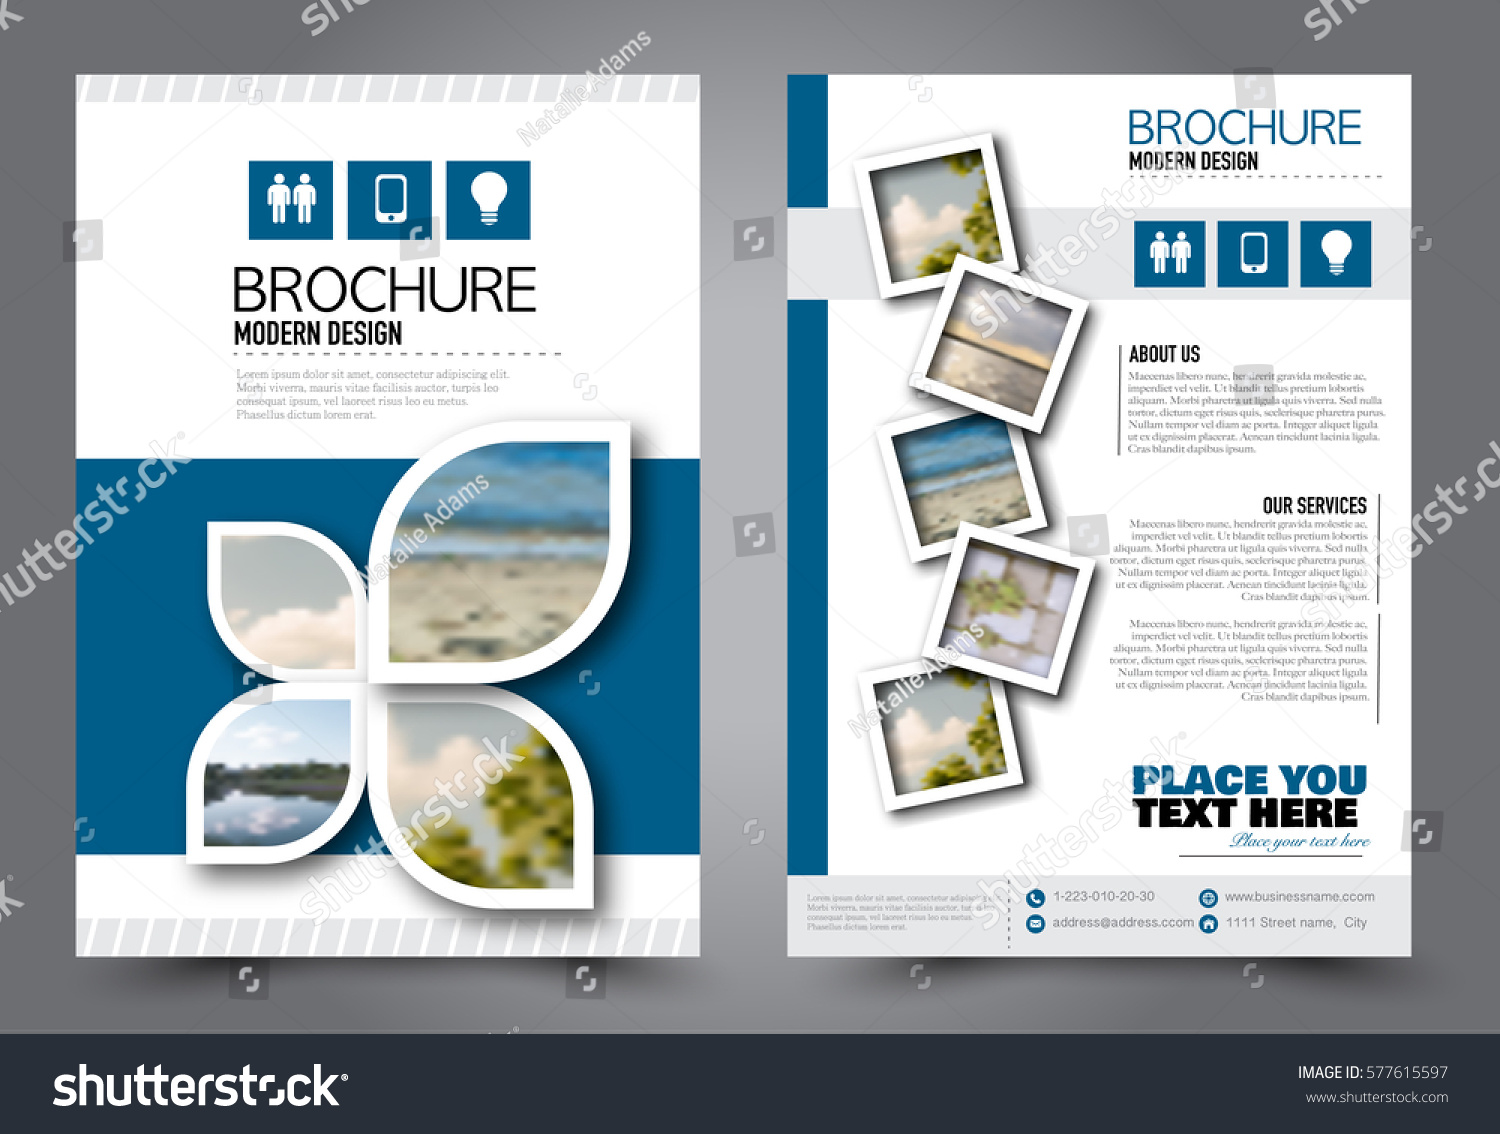 Flyer design business brochure template annual stock for Company brochure design templates